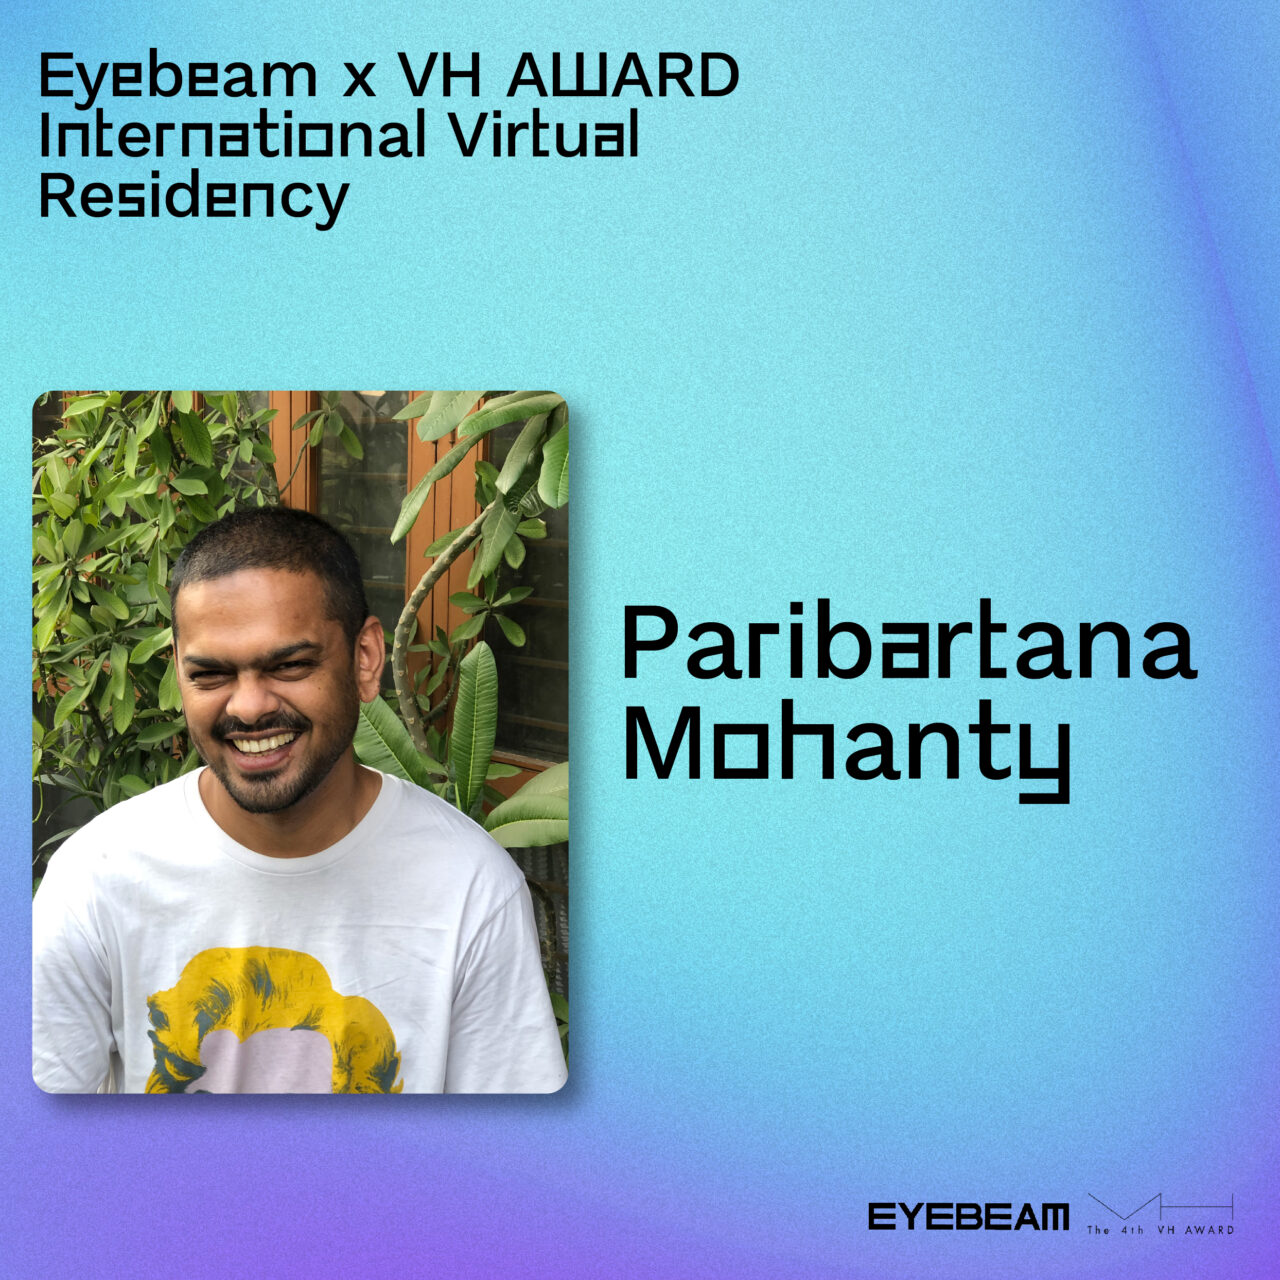 Gradient background with a photo of Paribartana Mohanty in the foreground.